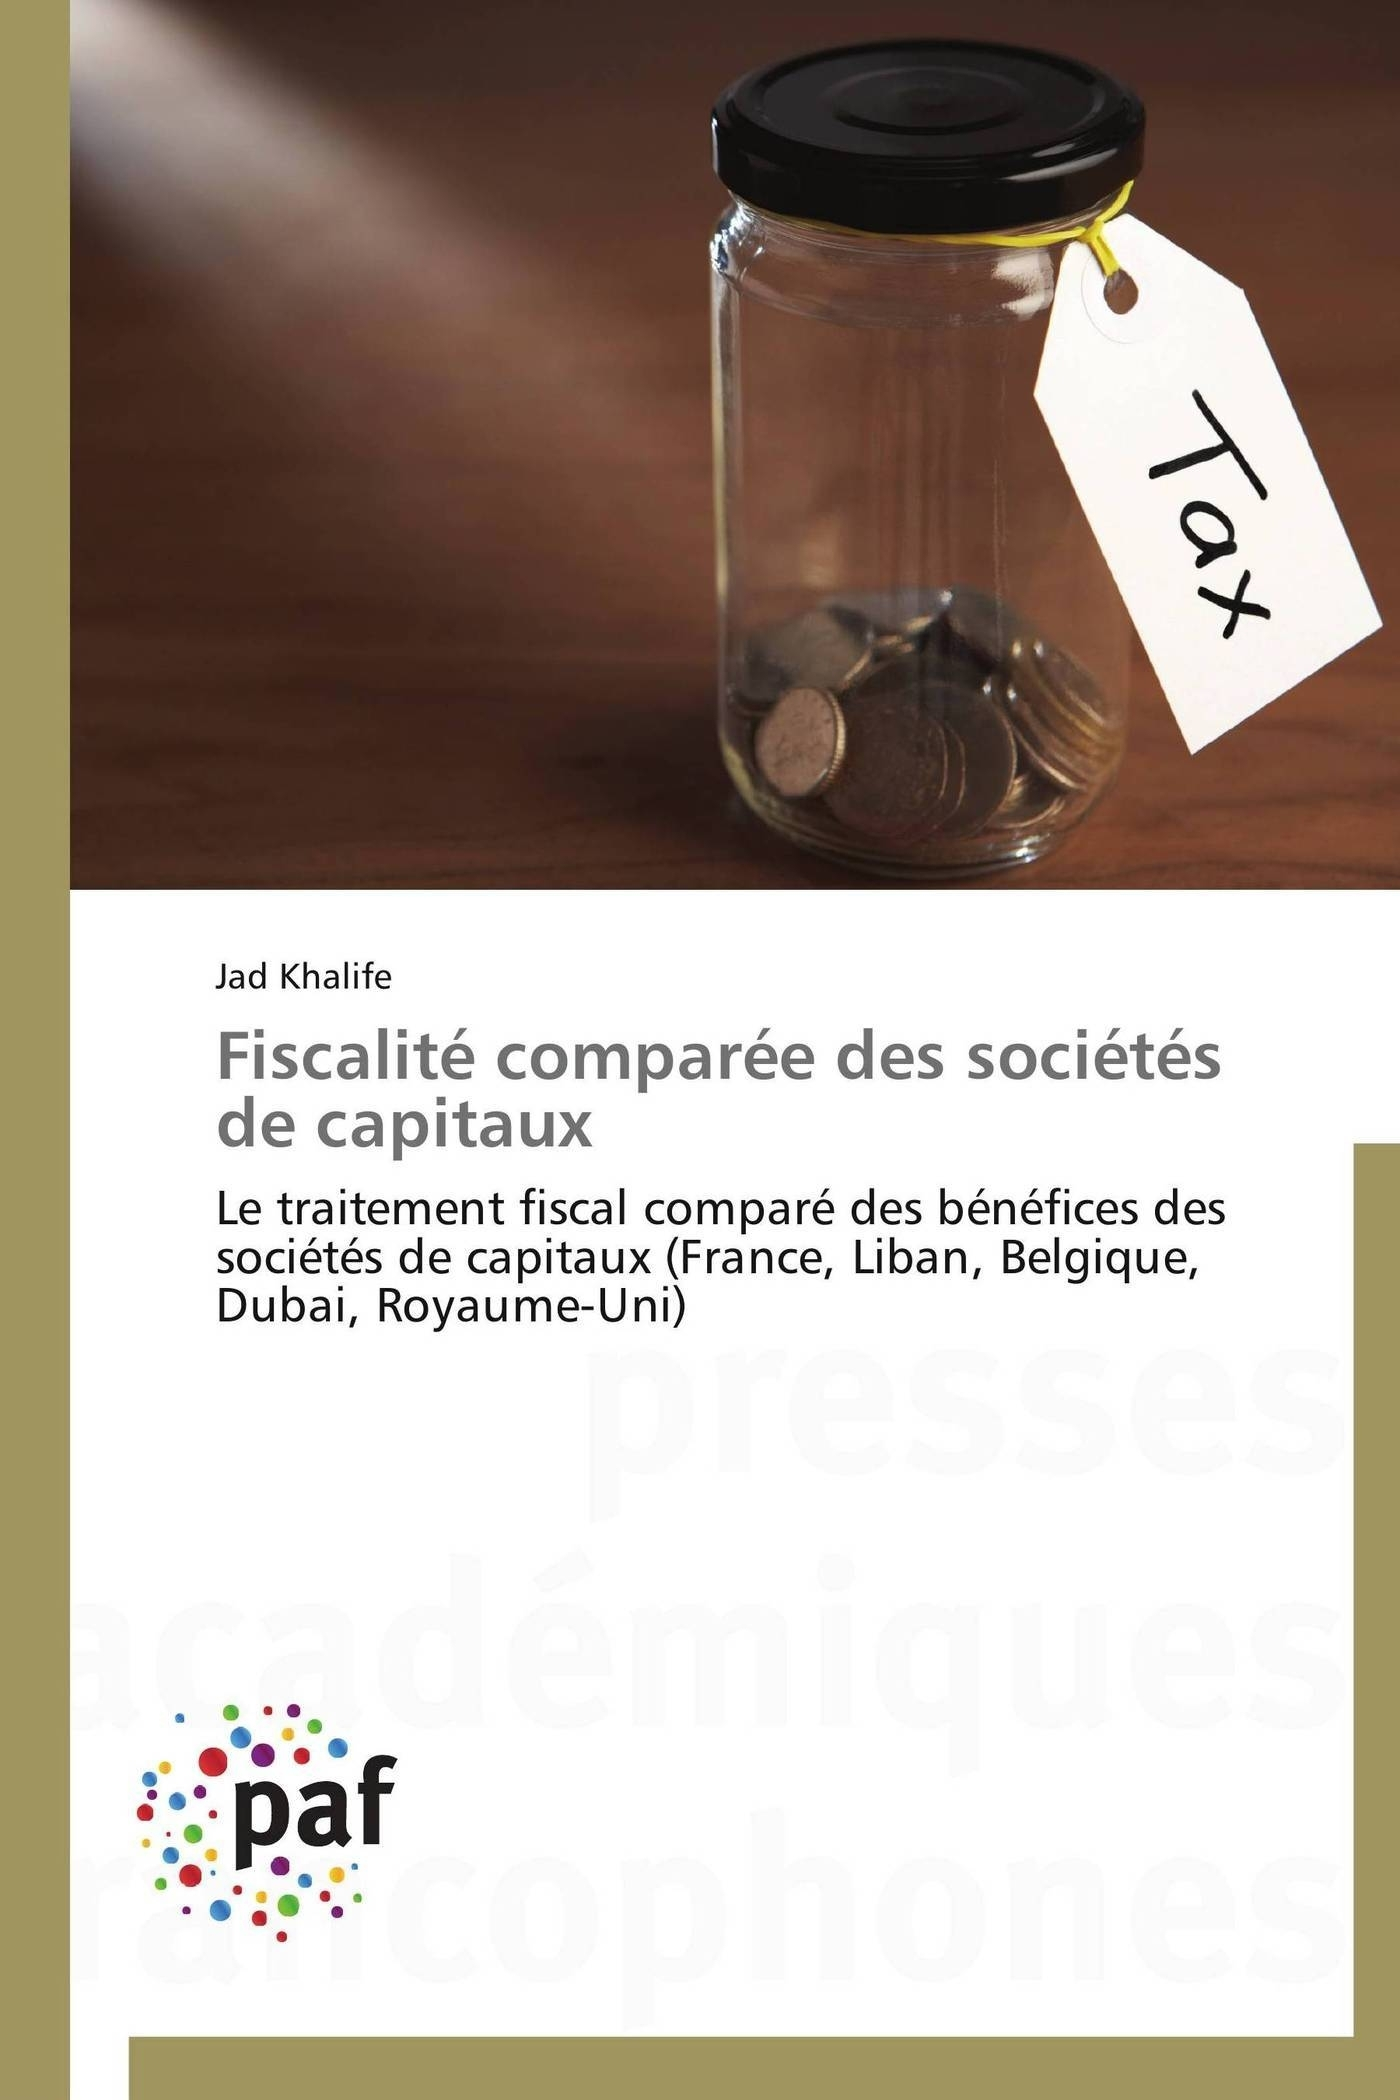 FISCALITE COMPAREE DES SOCIETES DE CAPITAUX